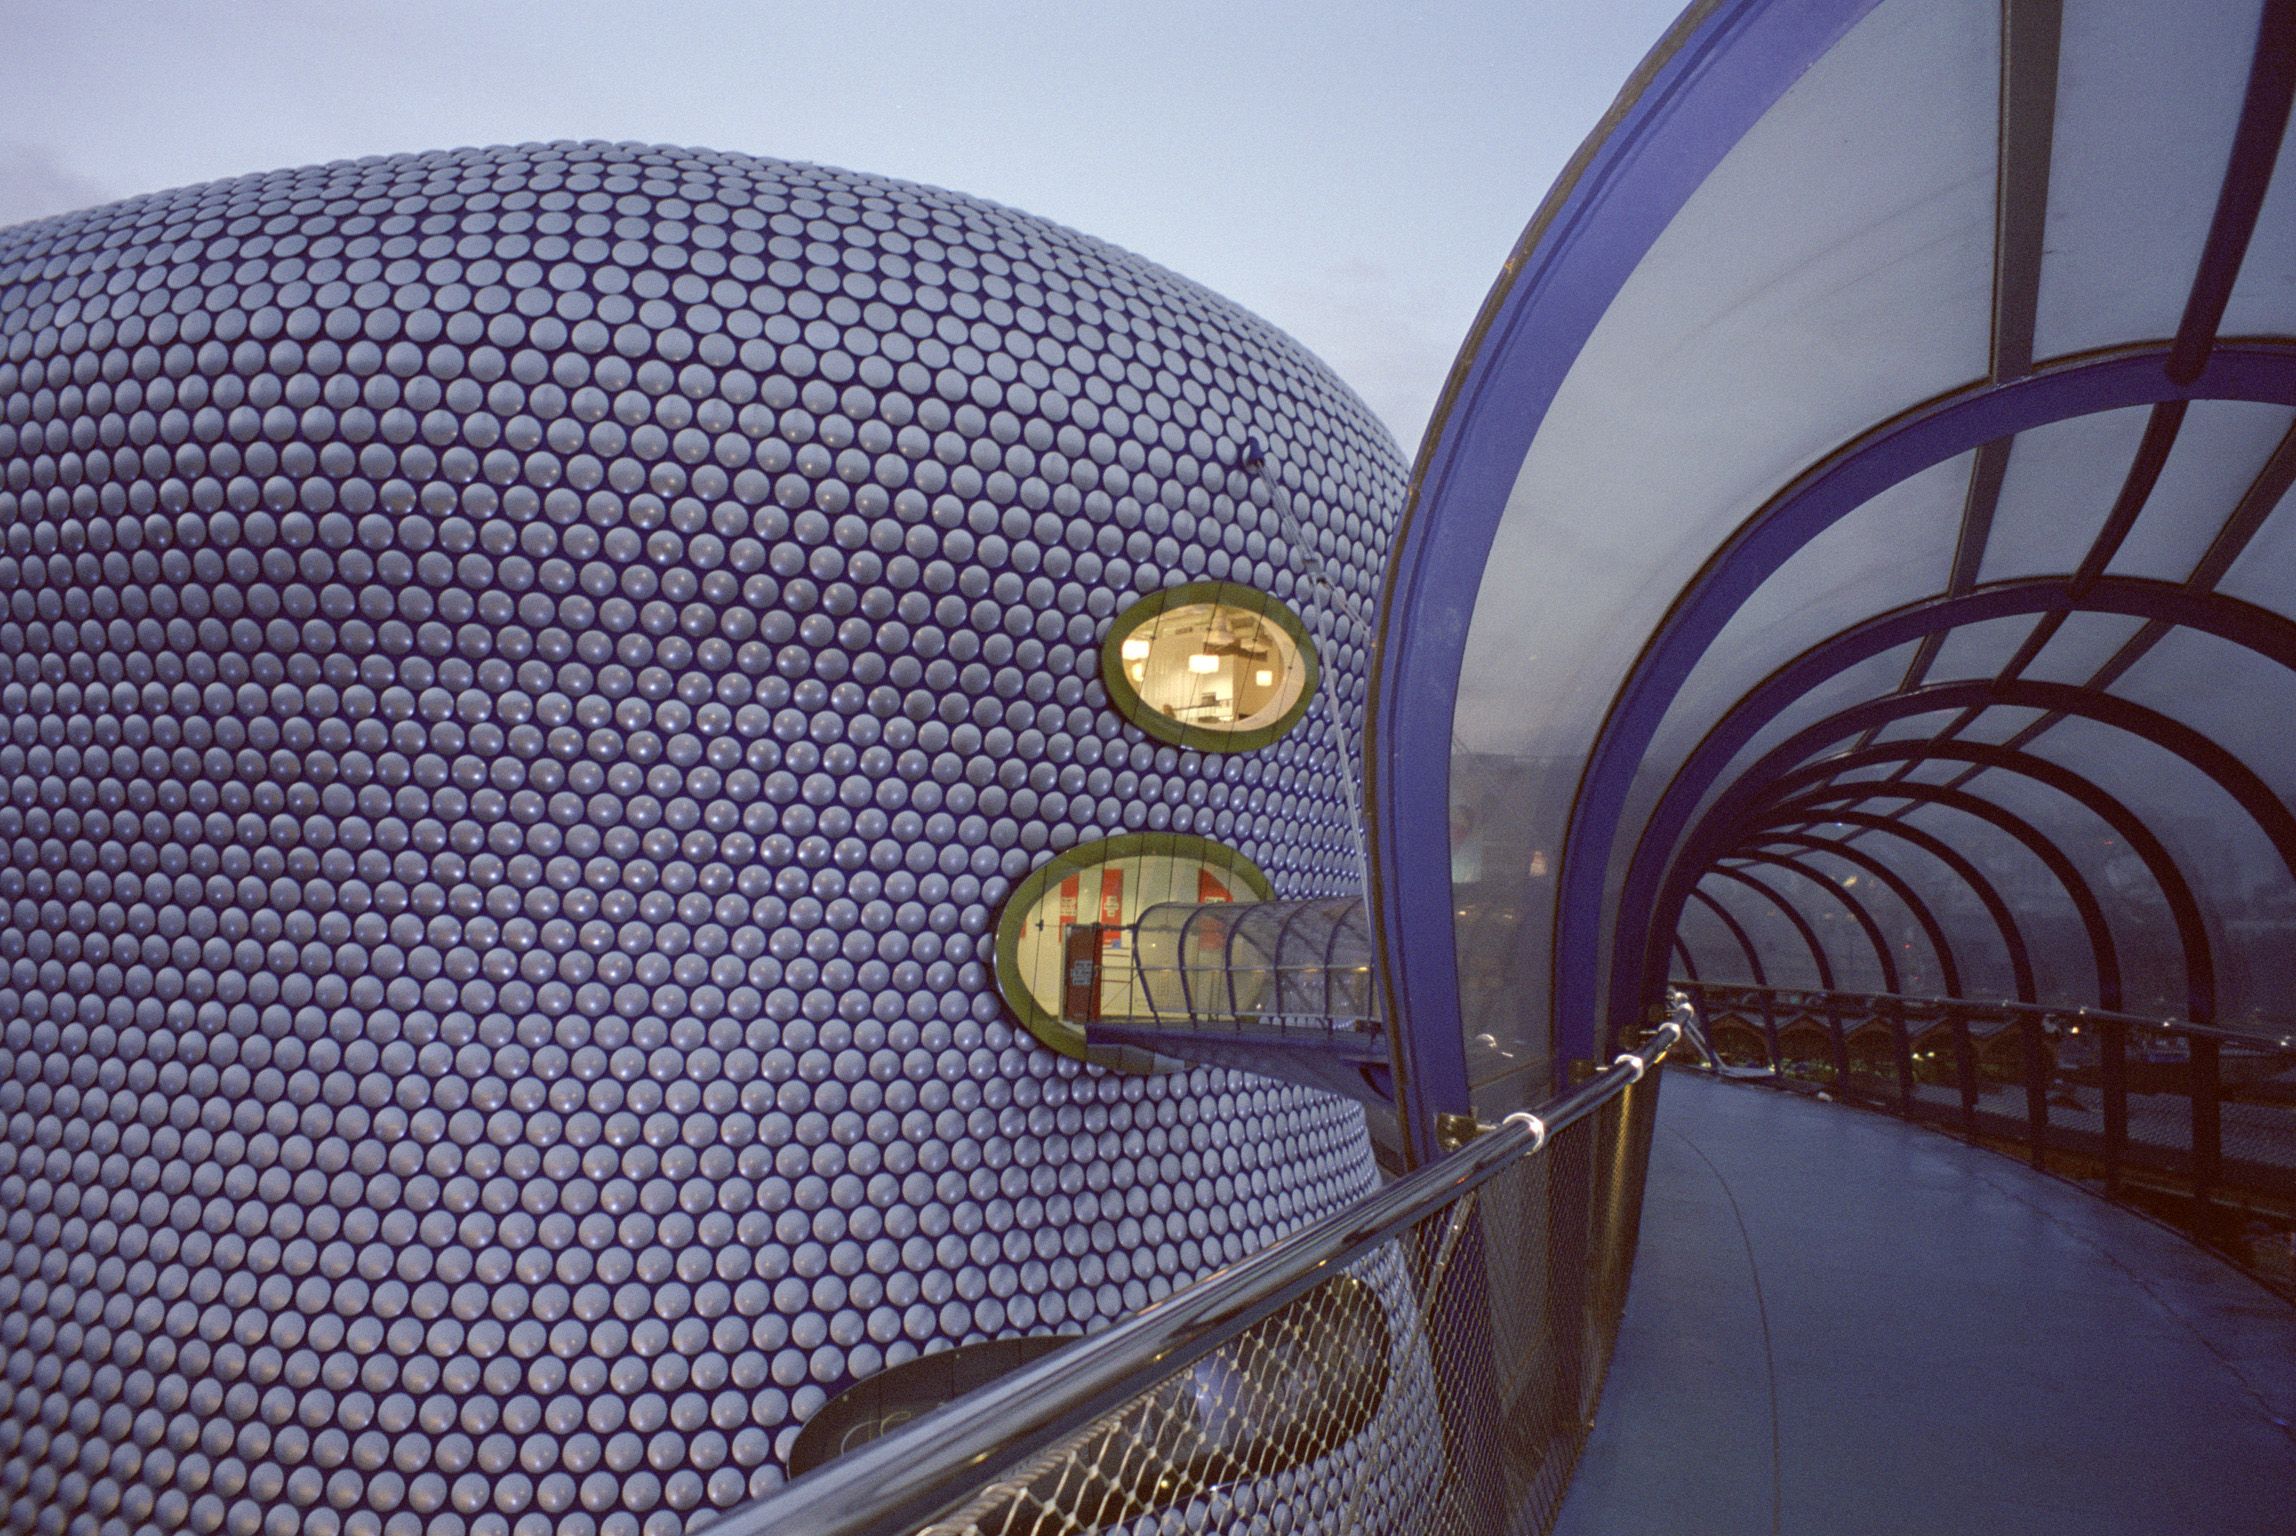 Landmark Selfridges Foot Bridge at Bullring, Birmingham. Part of Bullring Shopping Center.